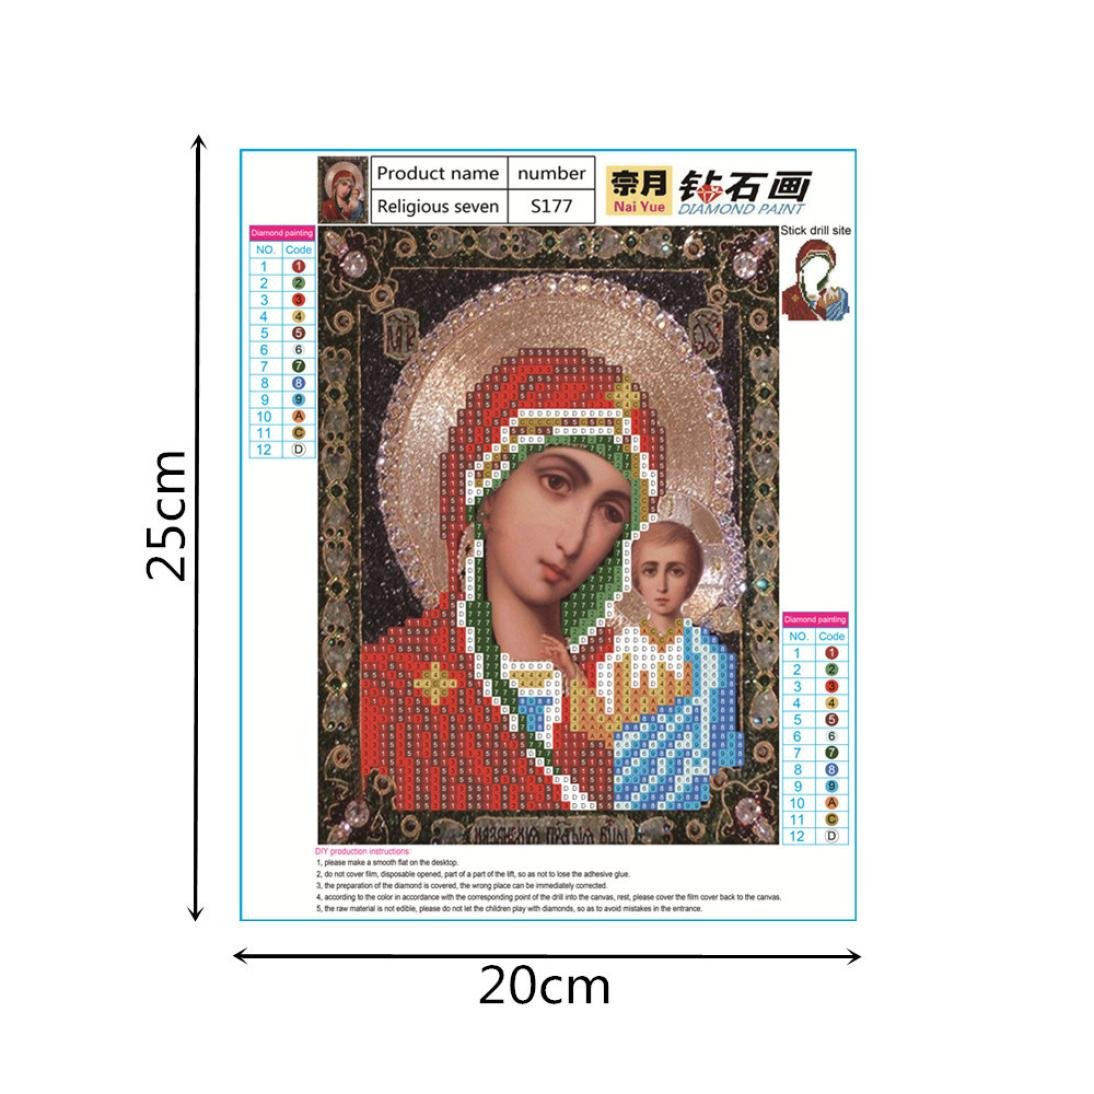 Shybuy 5D DIY Diamond Painting, Full Drill Christianity Religion Embroidery Rhinestone Cross Stitch Painting by Number Kits (G, 20cm25cm)